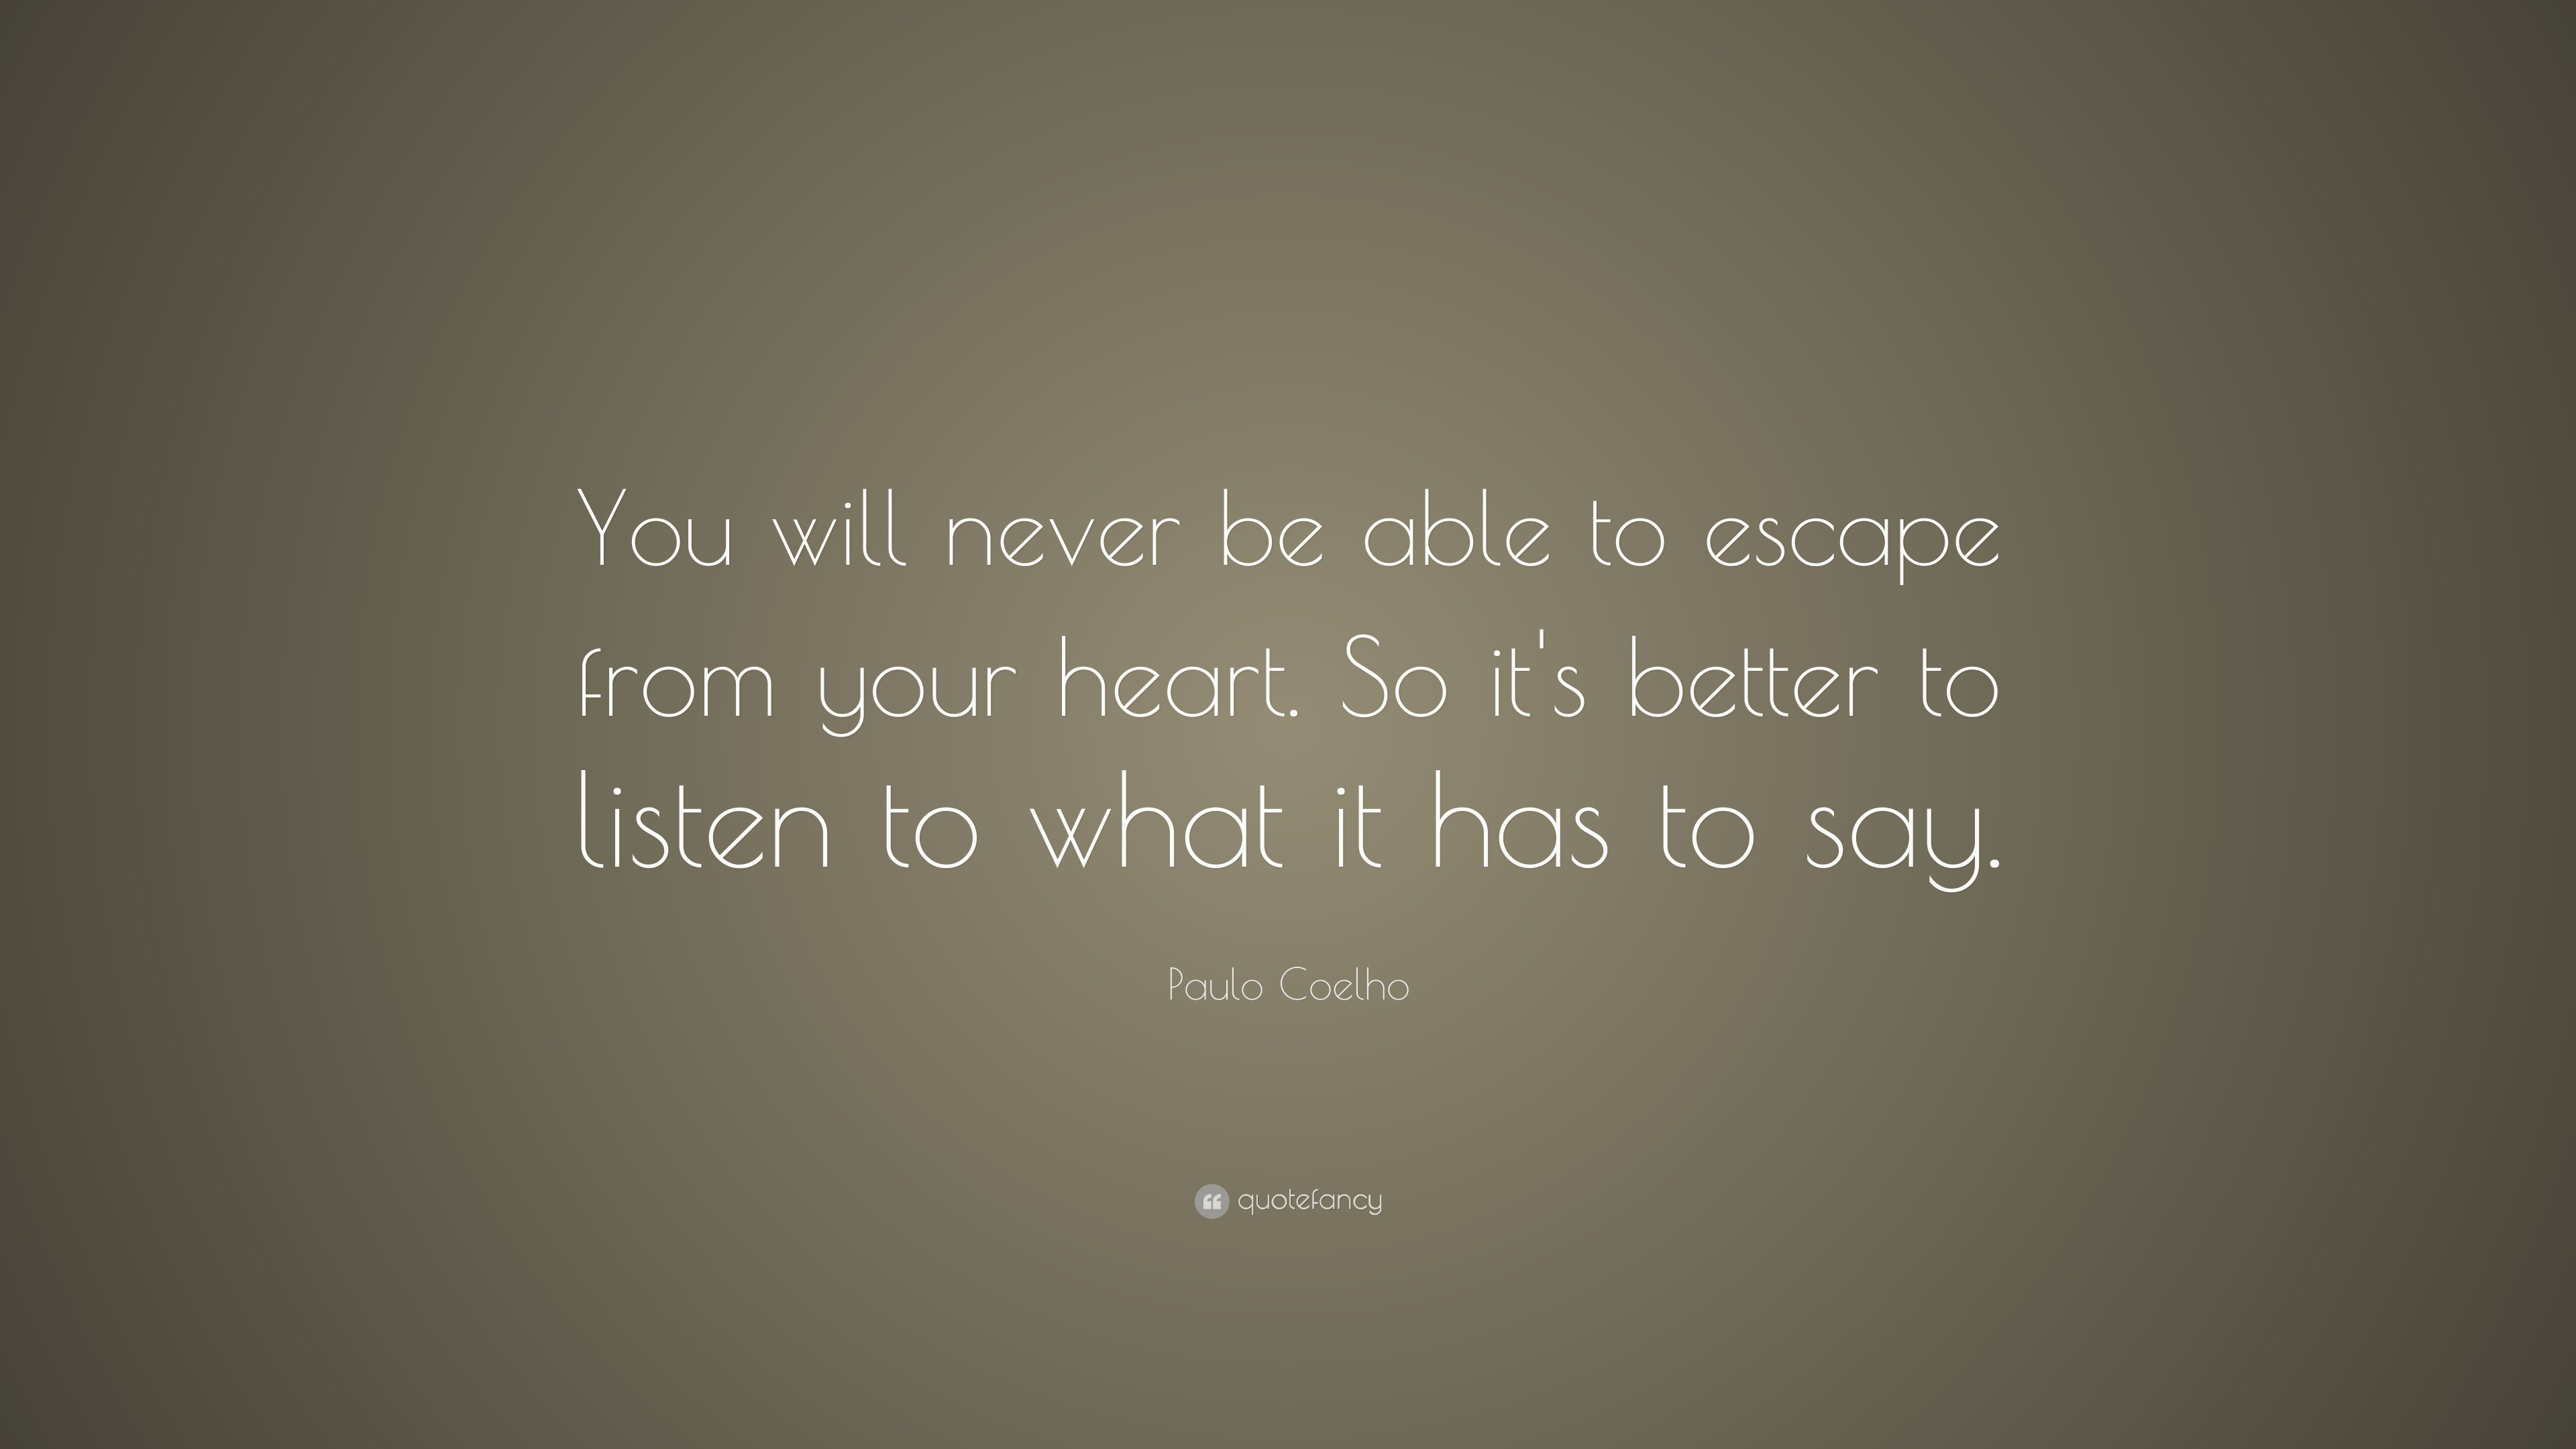 Paulo Coelho Quote You Will Never Be Able To Escape From Your